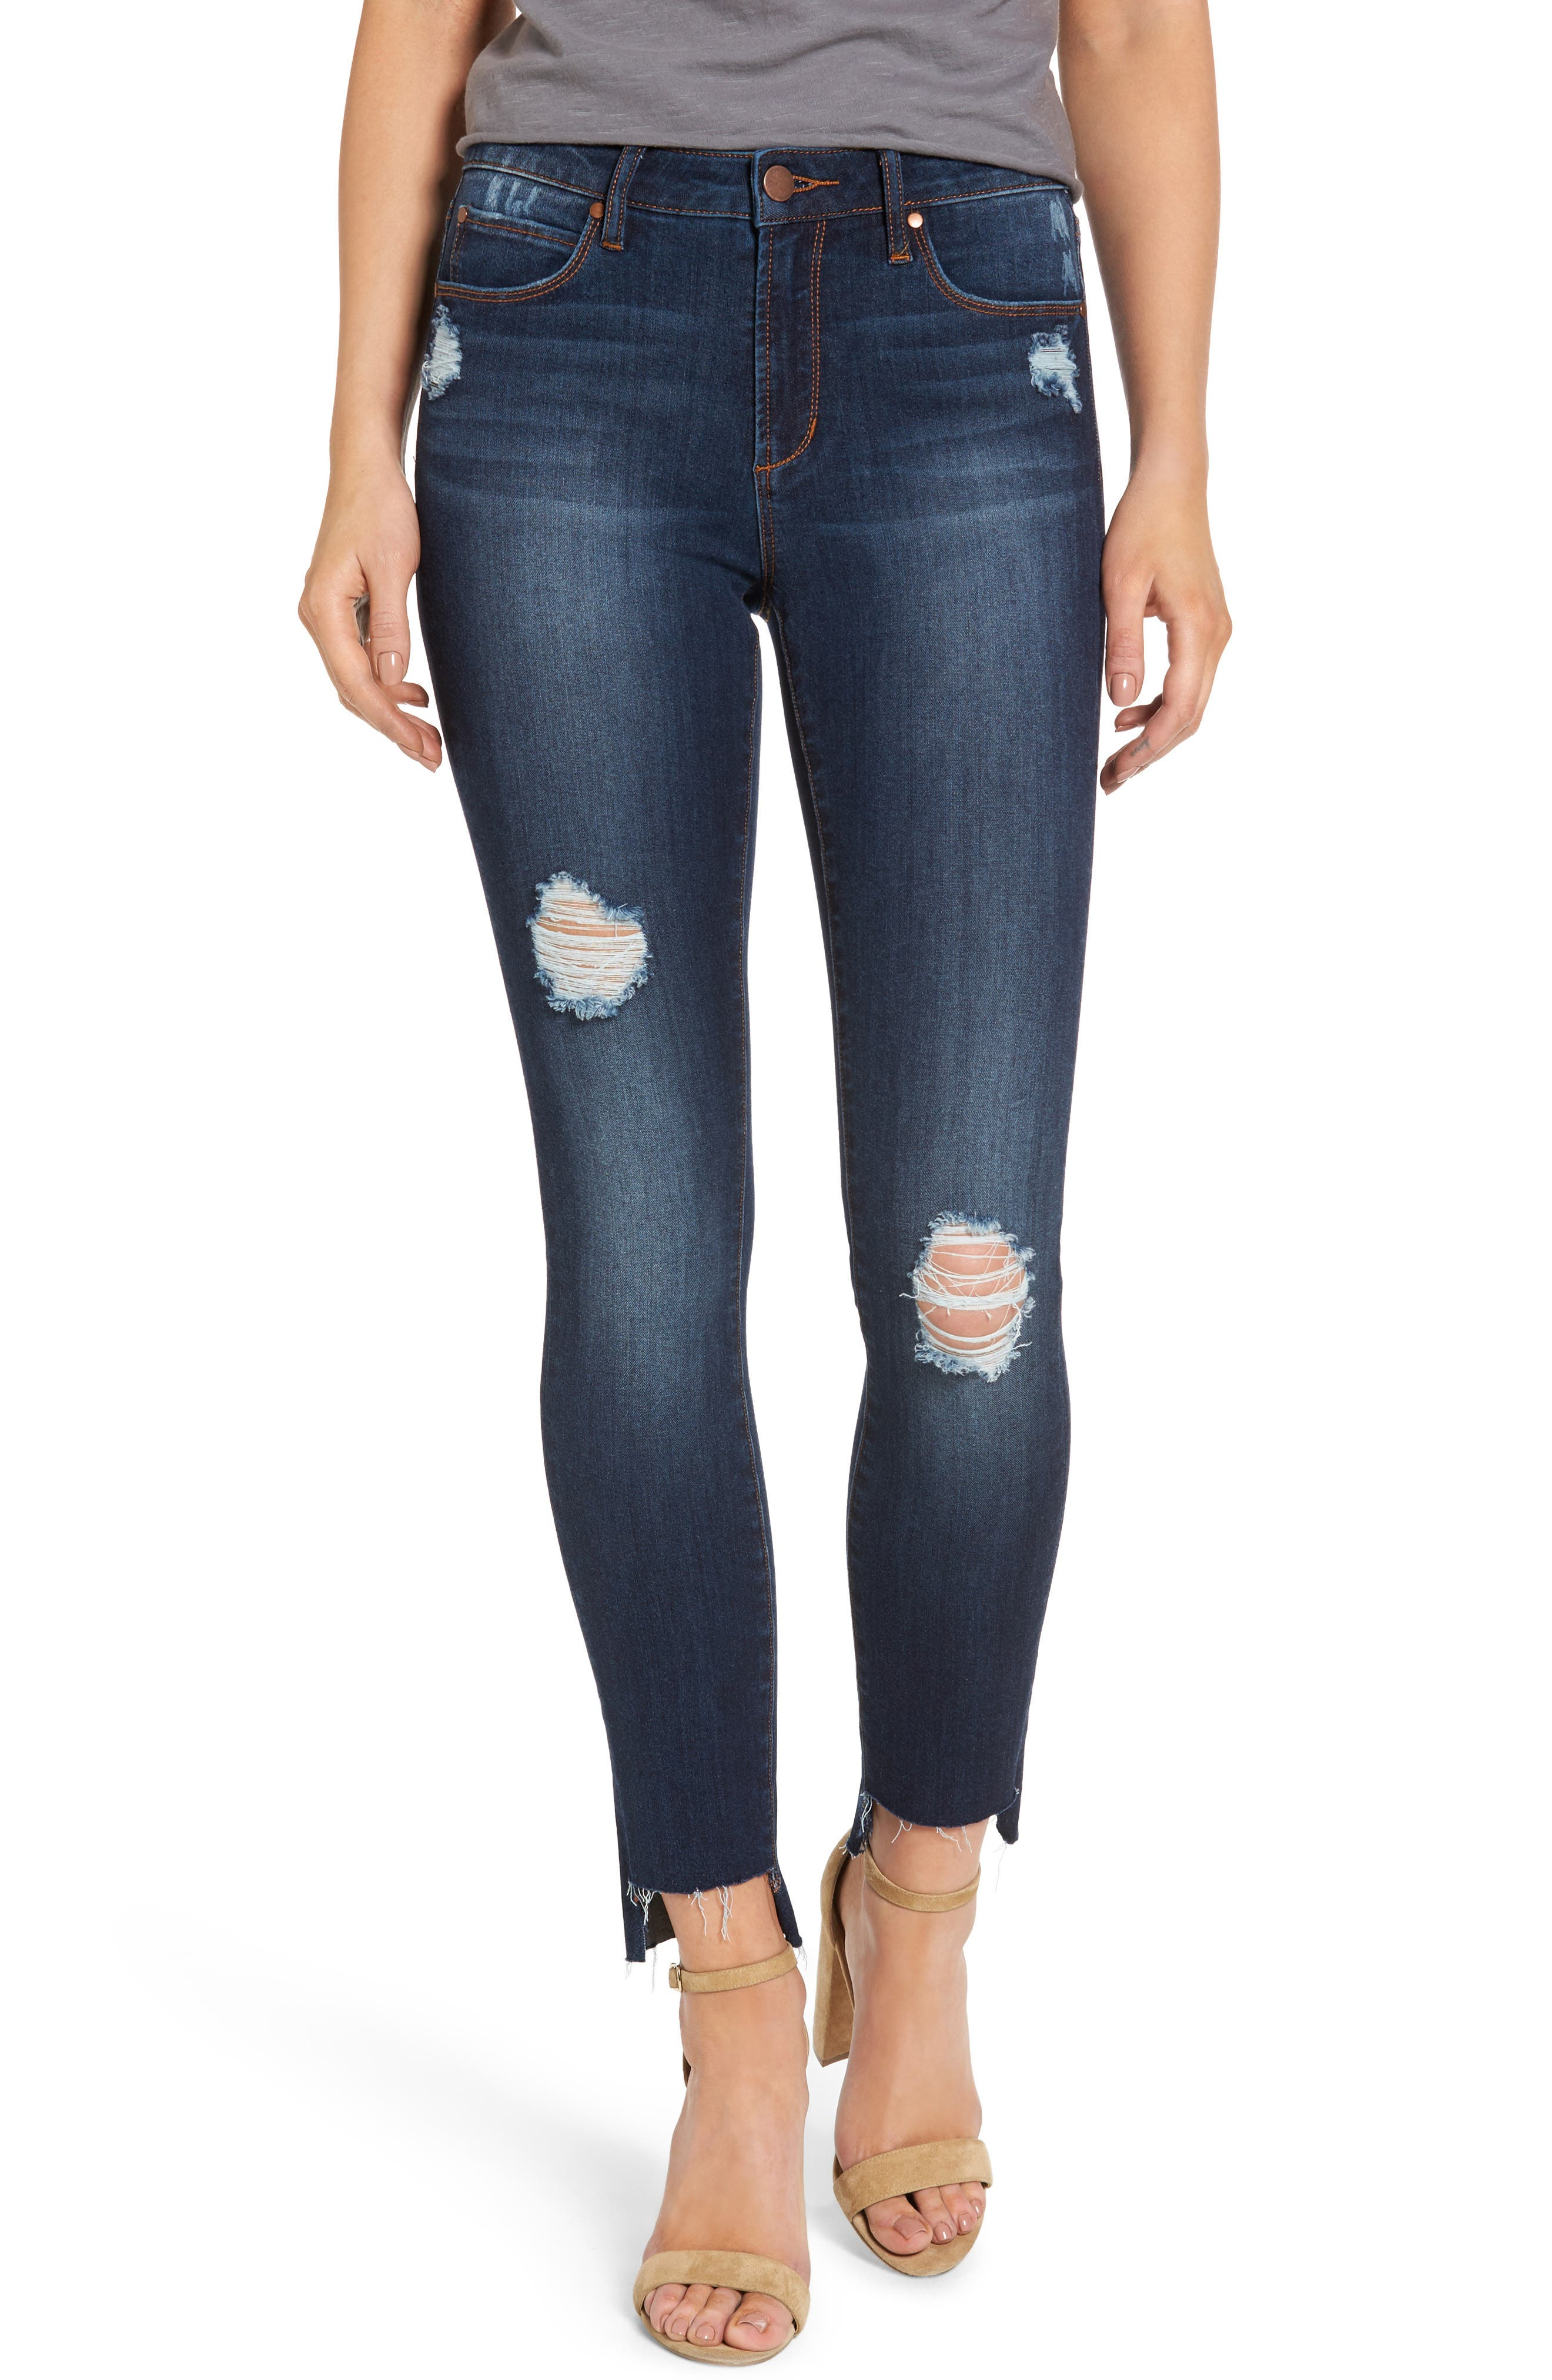 Leith Ripped Step Hem Skinny Jeans (Destroy Medium)